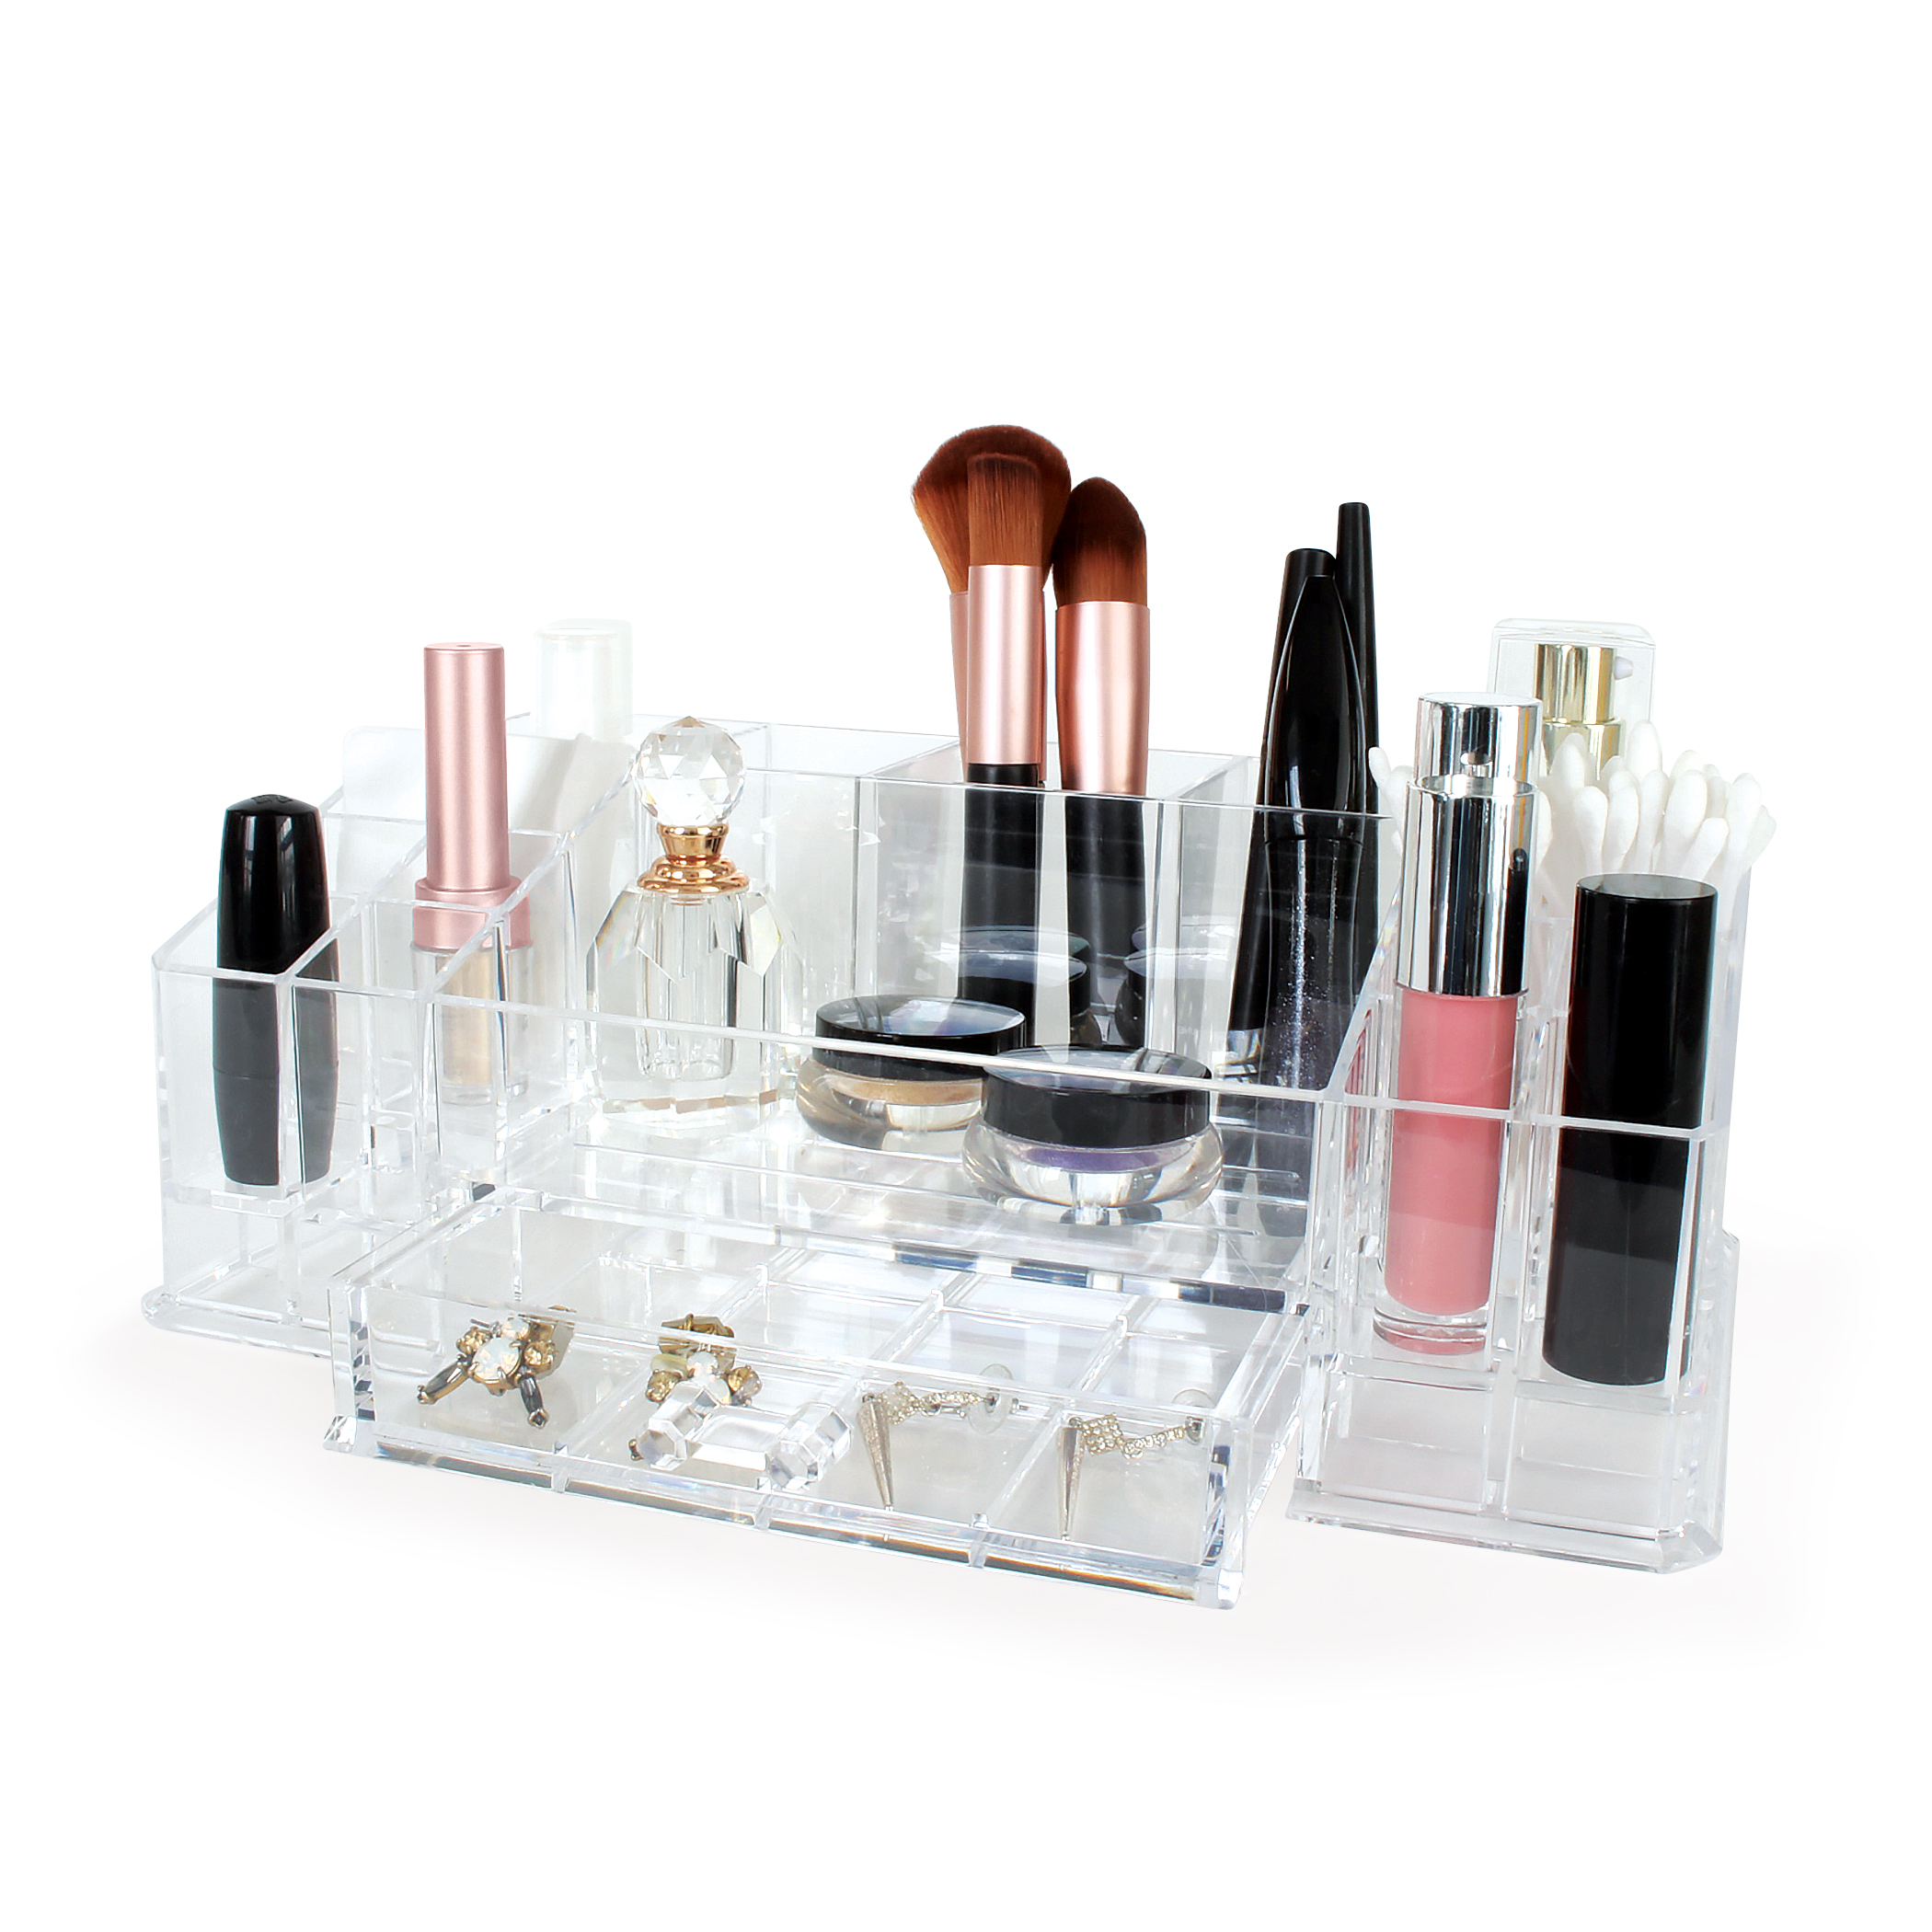 Acrylic Organizers - Keep your bathroom products organized and easily accessible with our acrylic organizers.